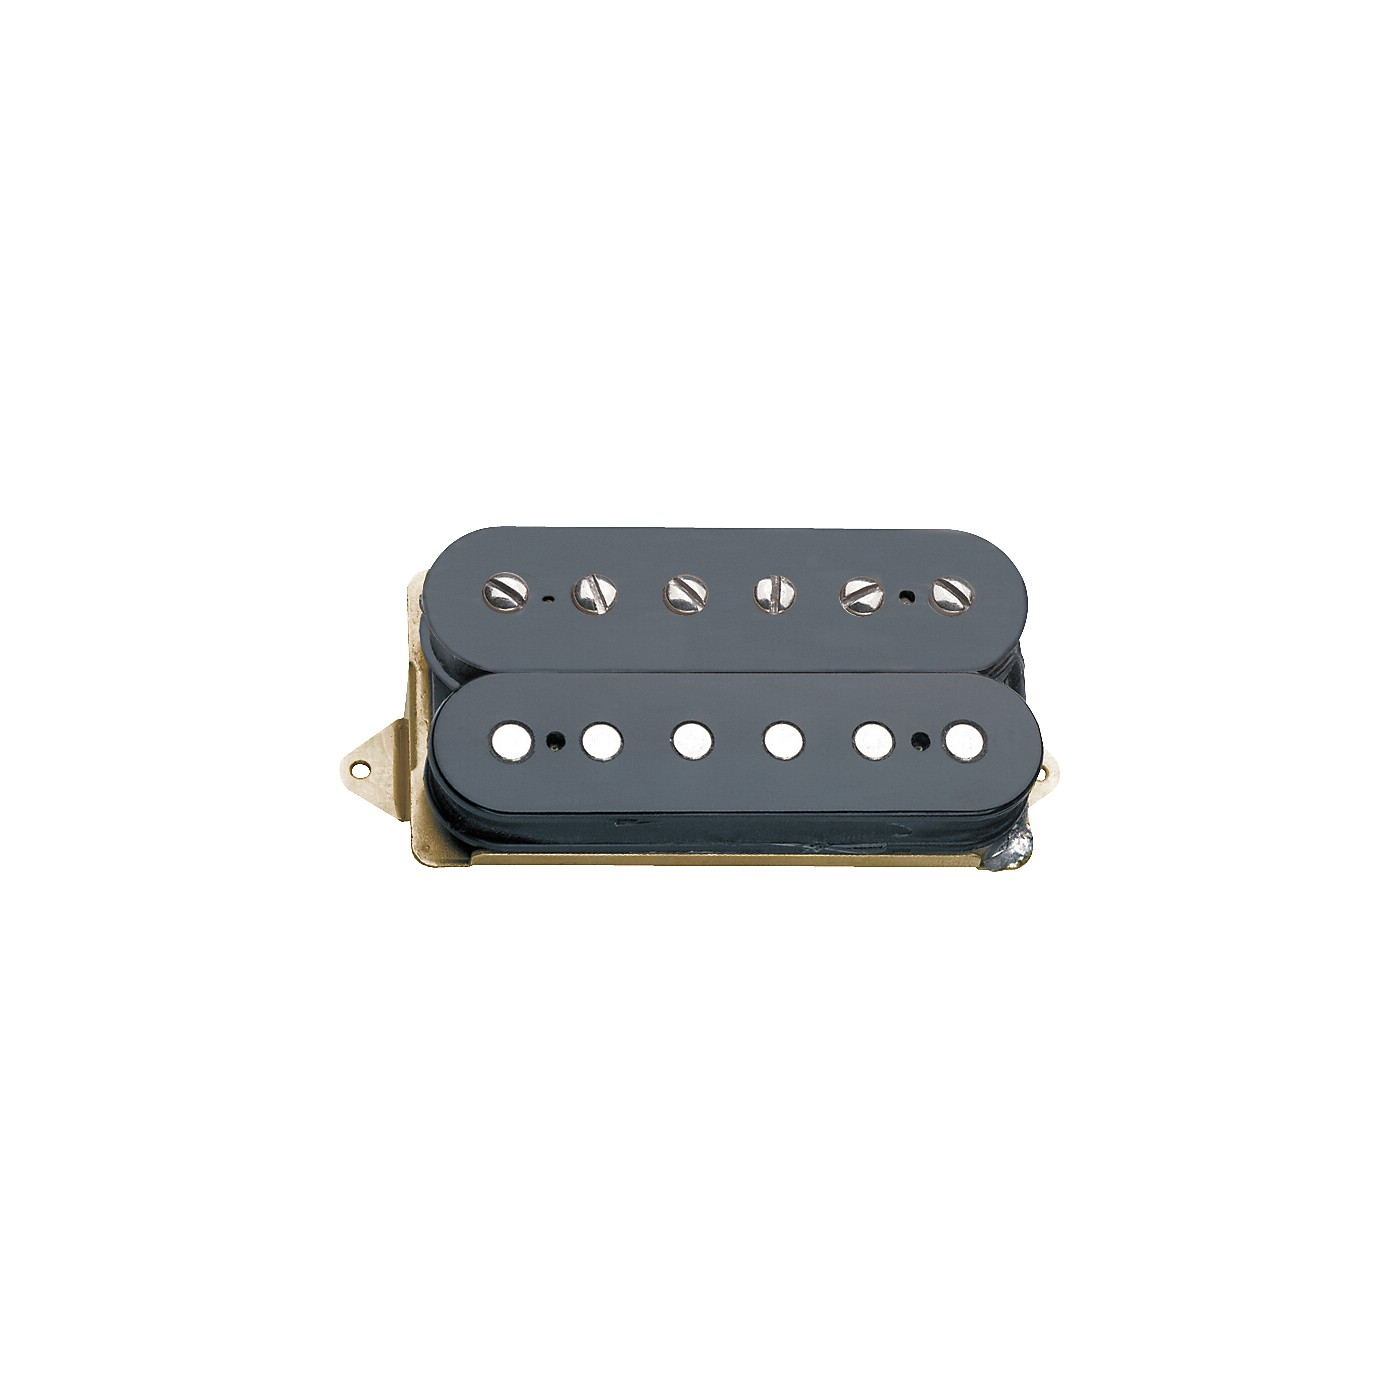 DiMarzio DP191 Air Classic Bridge Pickup thumbnail